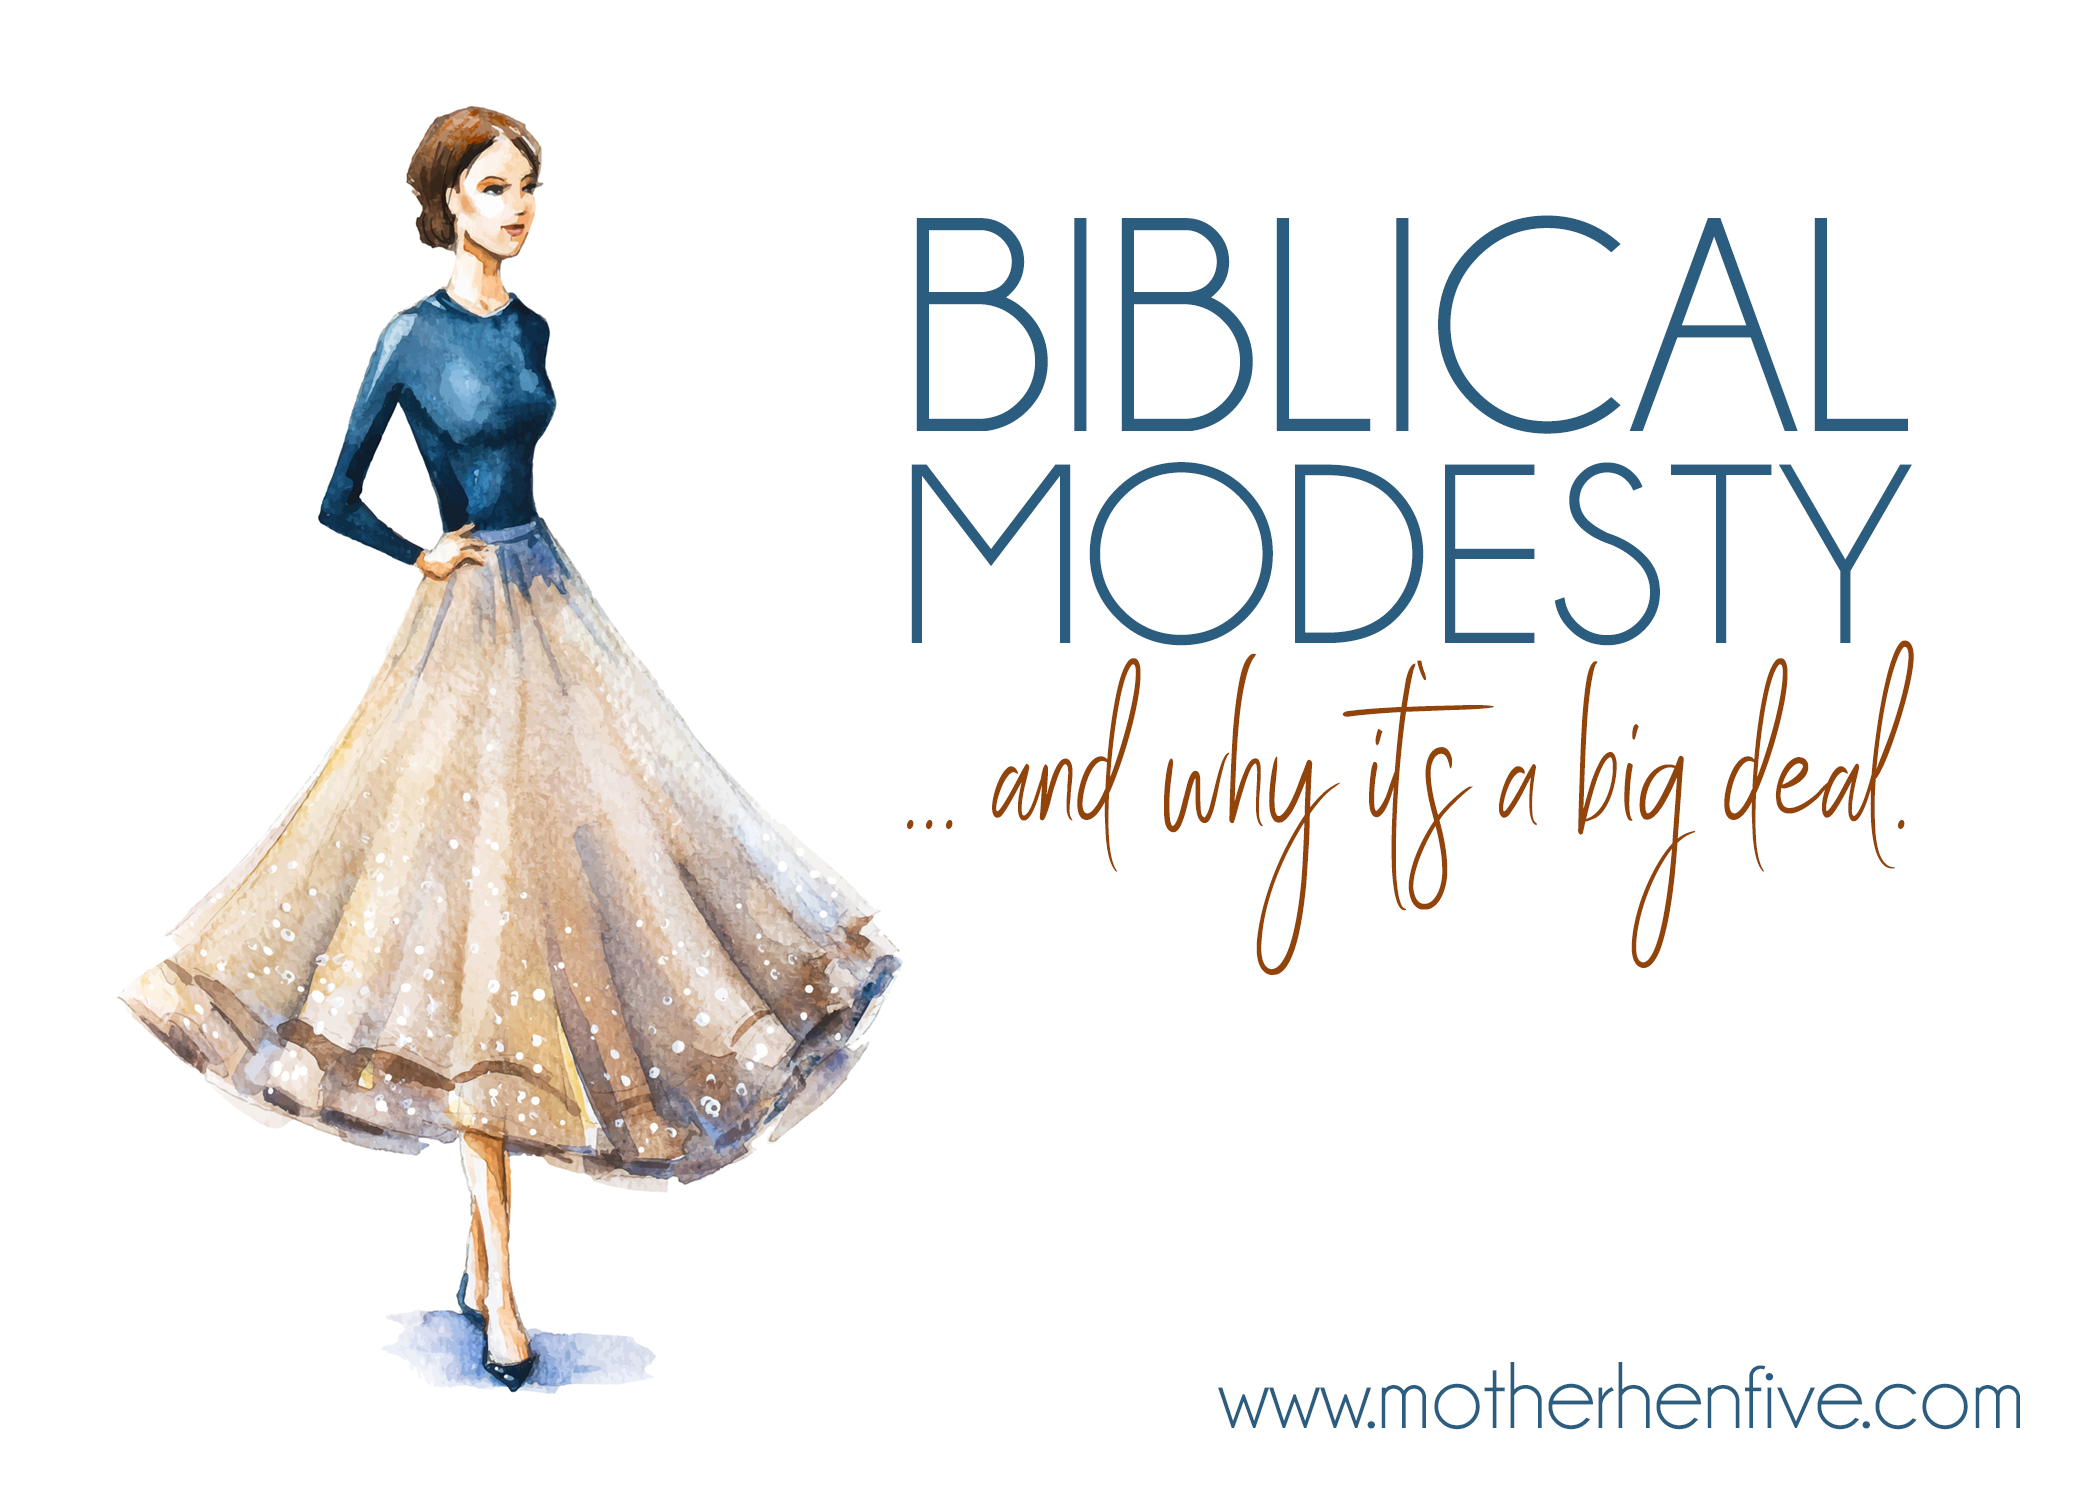 Biblical Modesty (and why it's a big deal)